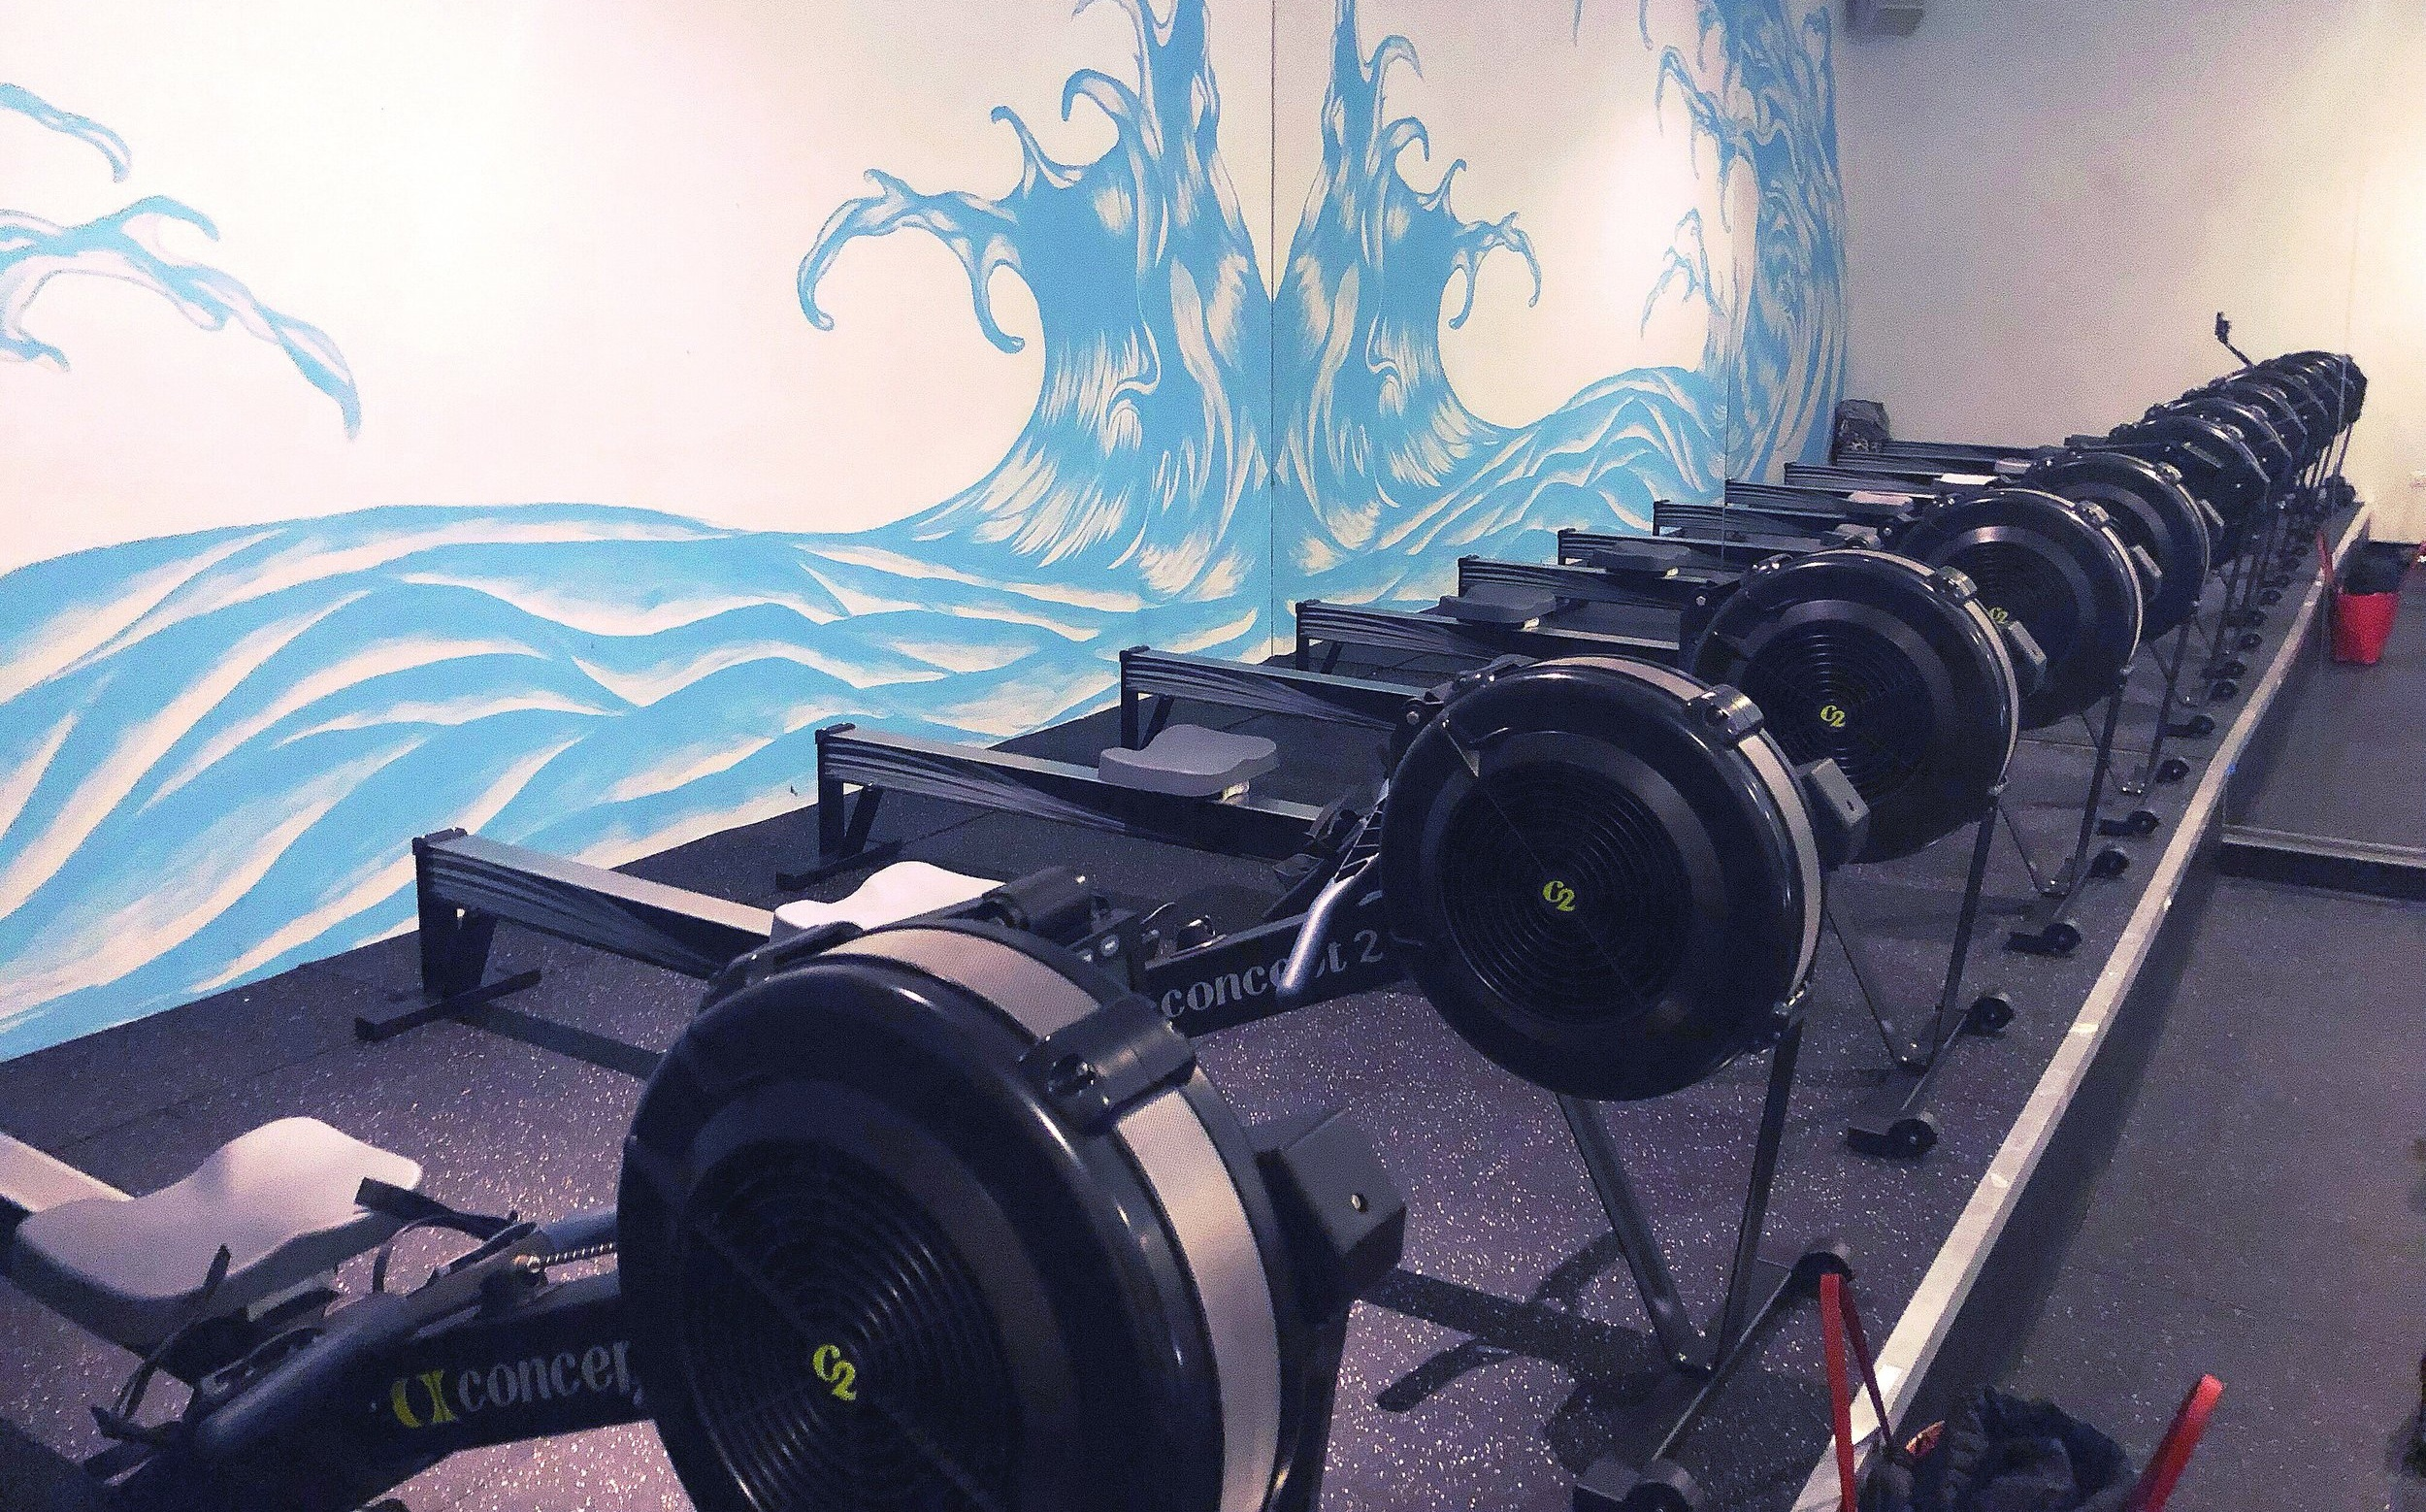 Inside Iron and Oar studio with rowers in Chicago.